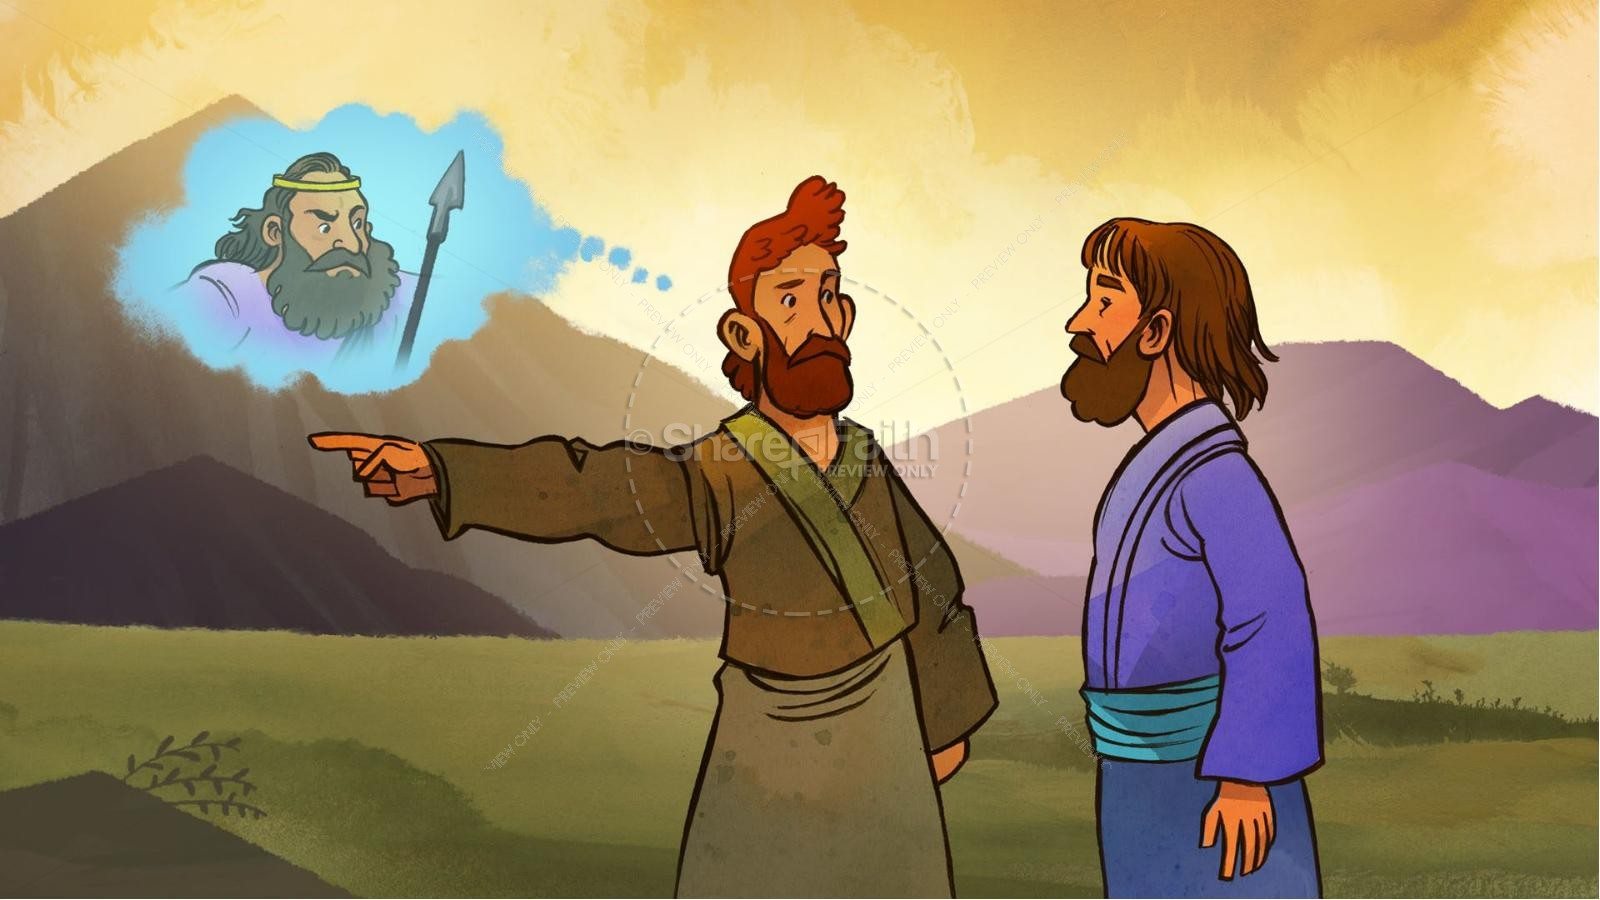 1 Samuel 20 David and Jonathan Kids Bible Story | slide 2